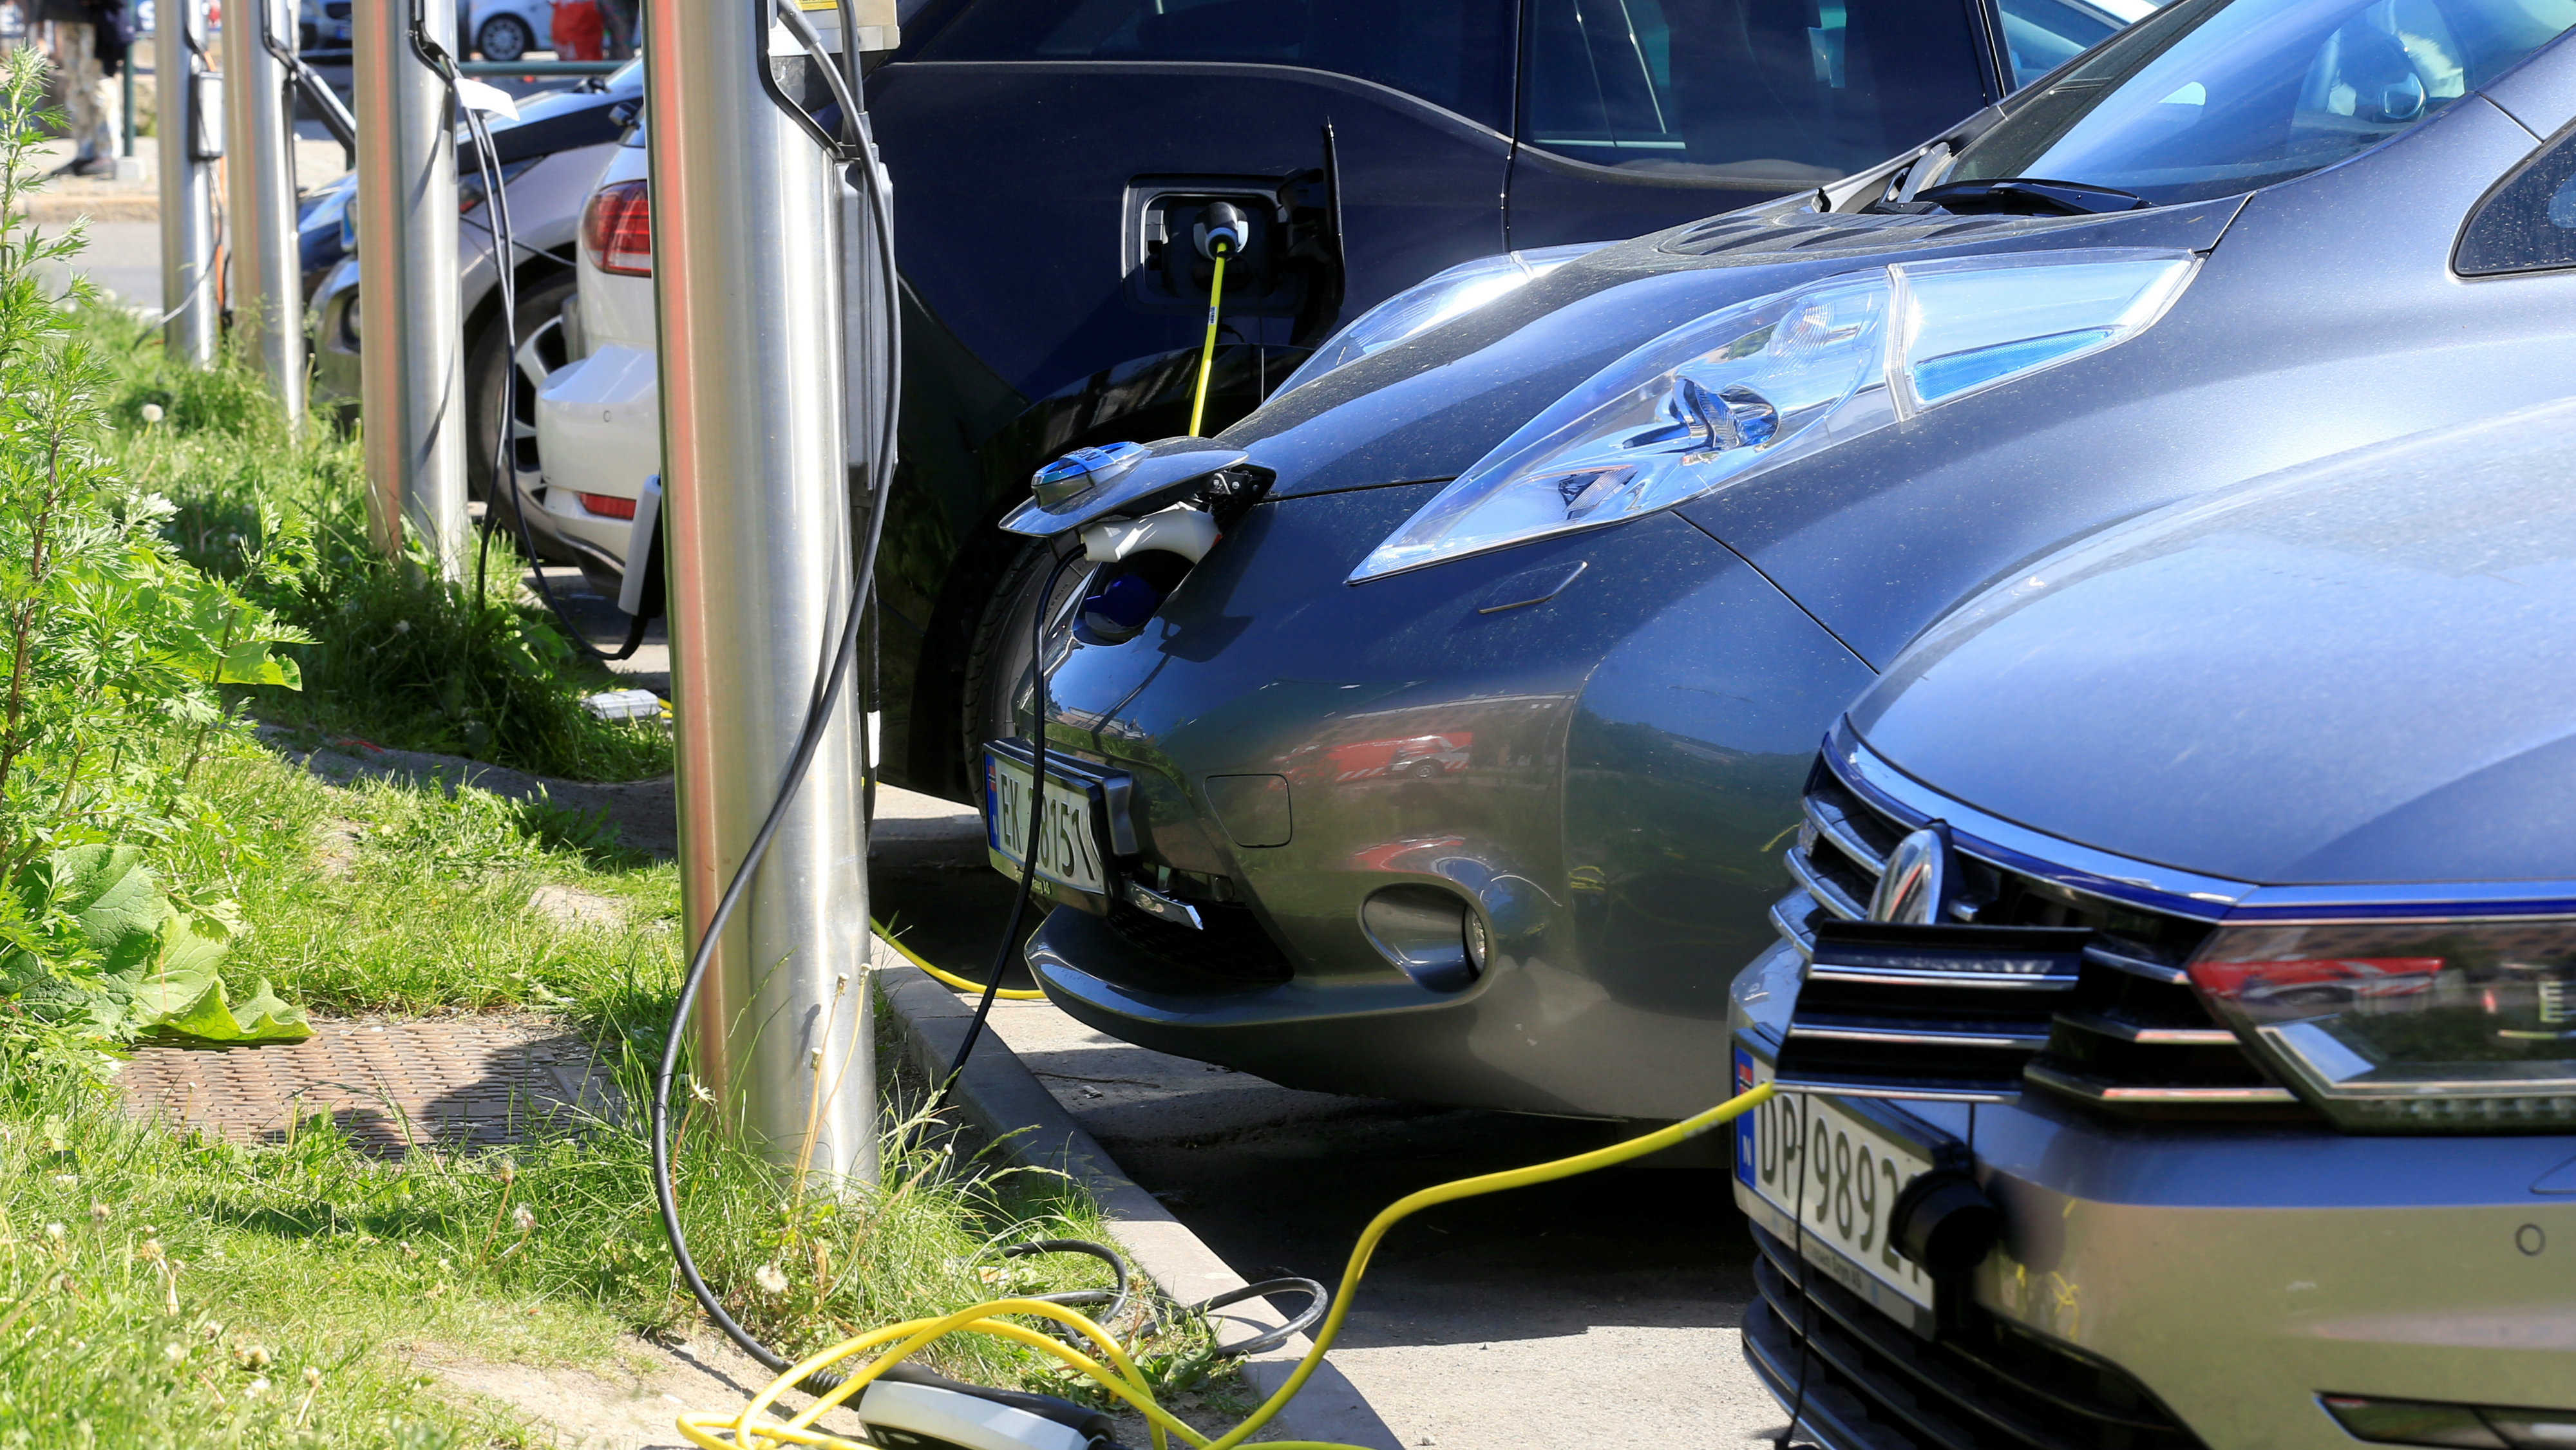 Electric cars are charged at a parking lot in Oslo, Norway.